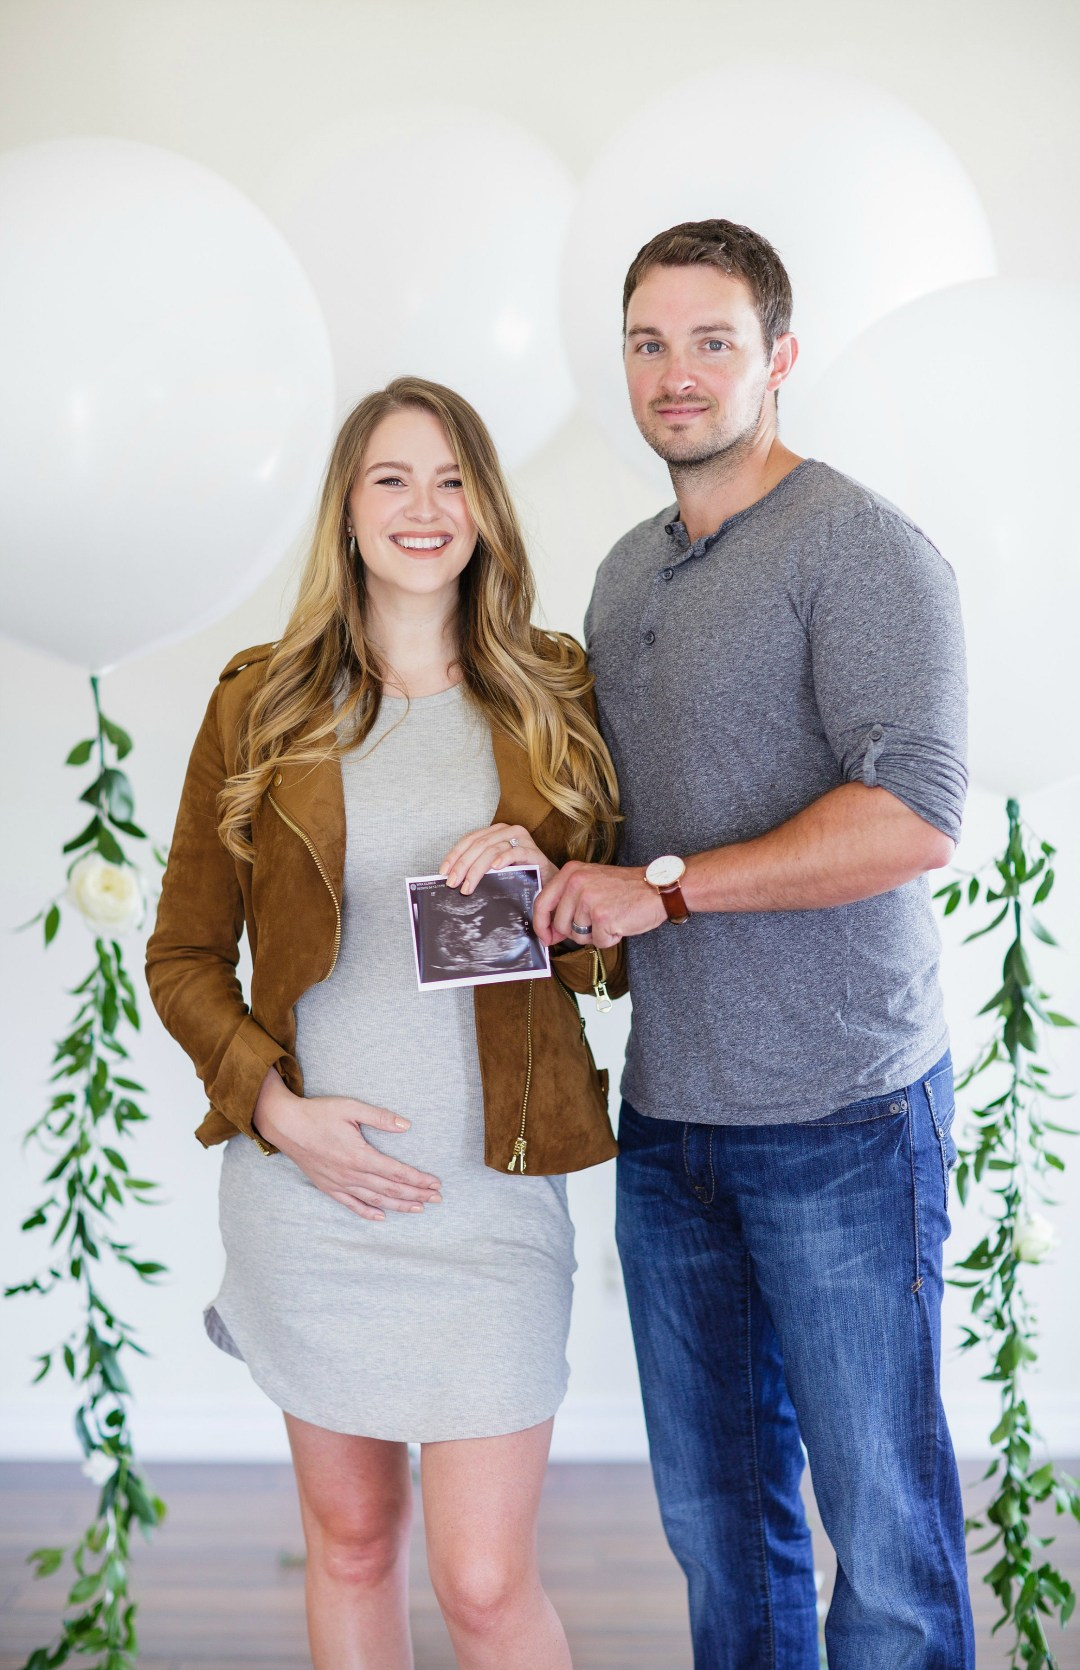 pregnancy-announcement-fashion-lifestyle-blogger-canadian-maternity-rose-city-style-guide-16